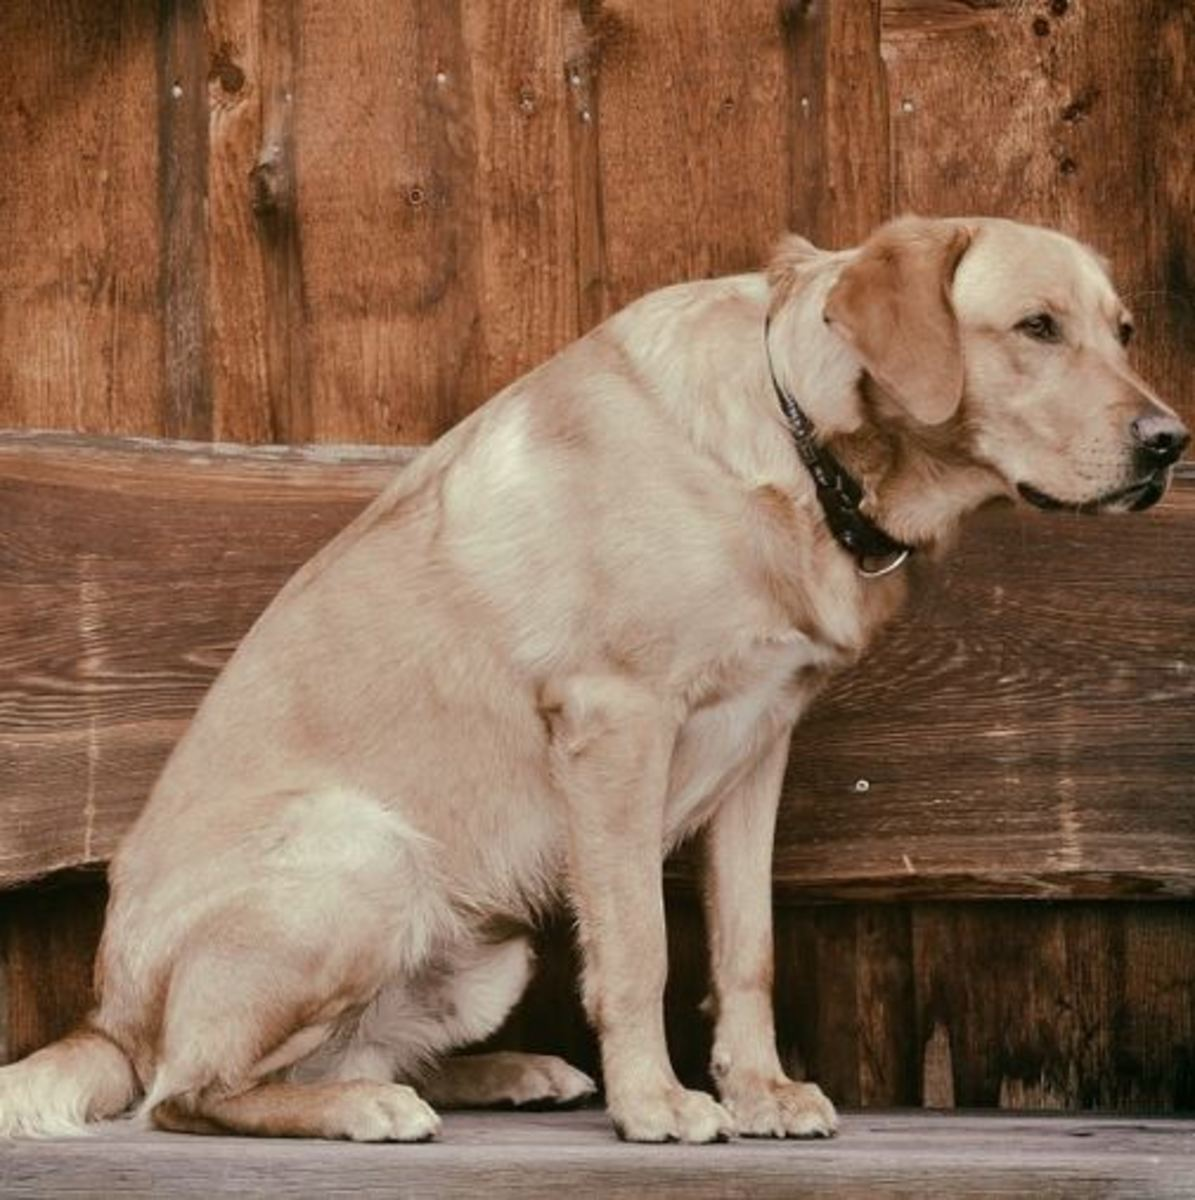 Labs are prone to laryngeal paralysis